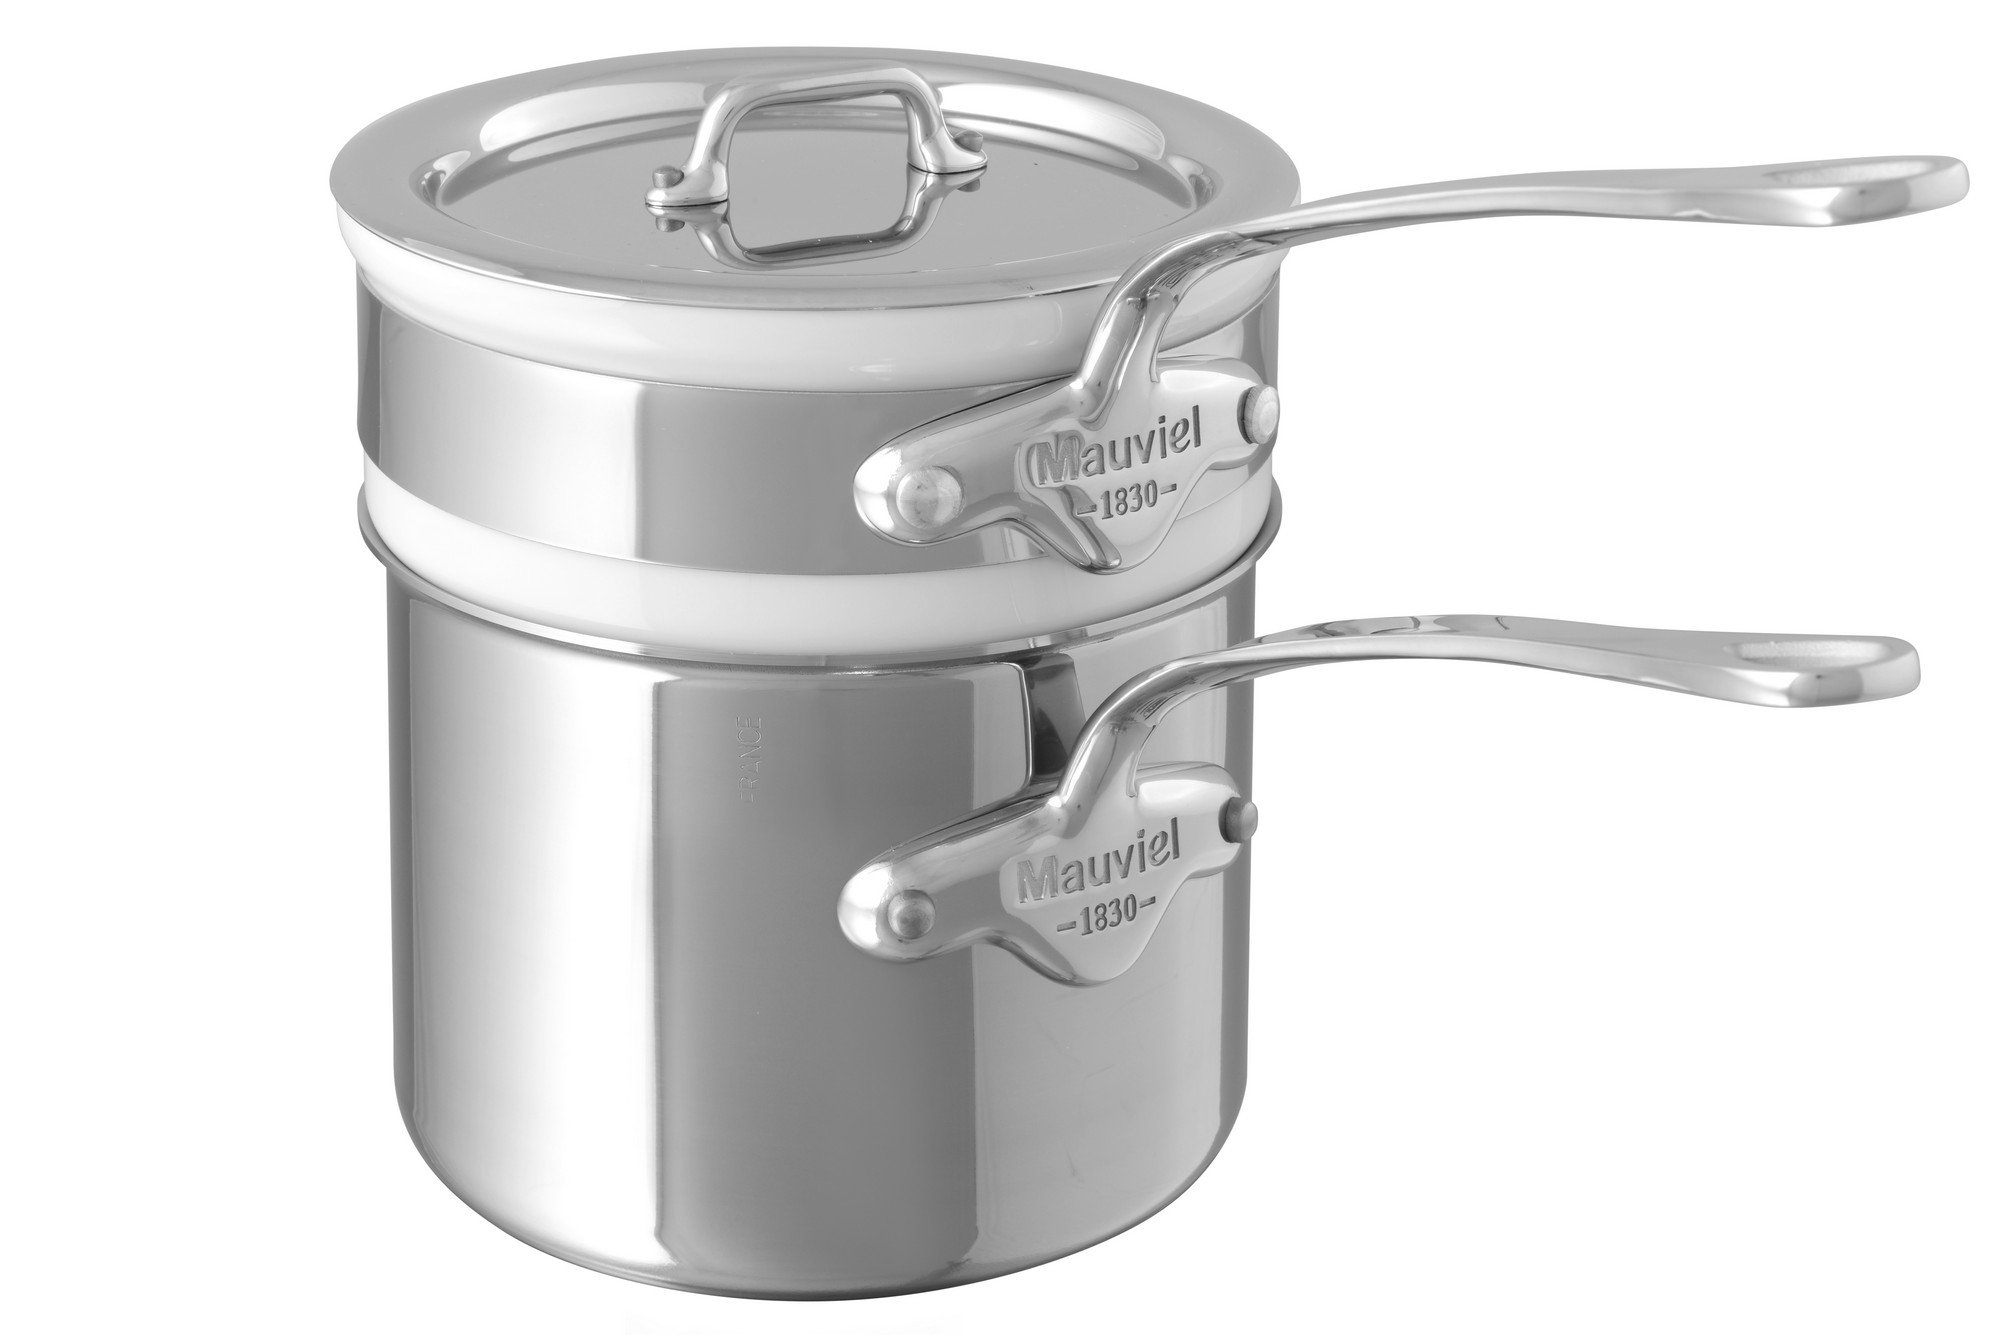 Mauviel Made In France M'Cook 5204.12 0.9 Quart Bain Marie with Lid, Cast Stainless Steel Handle by Mauviel